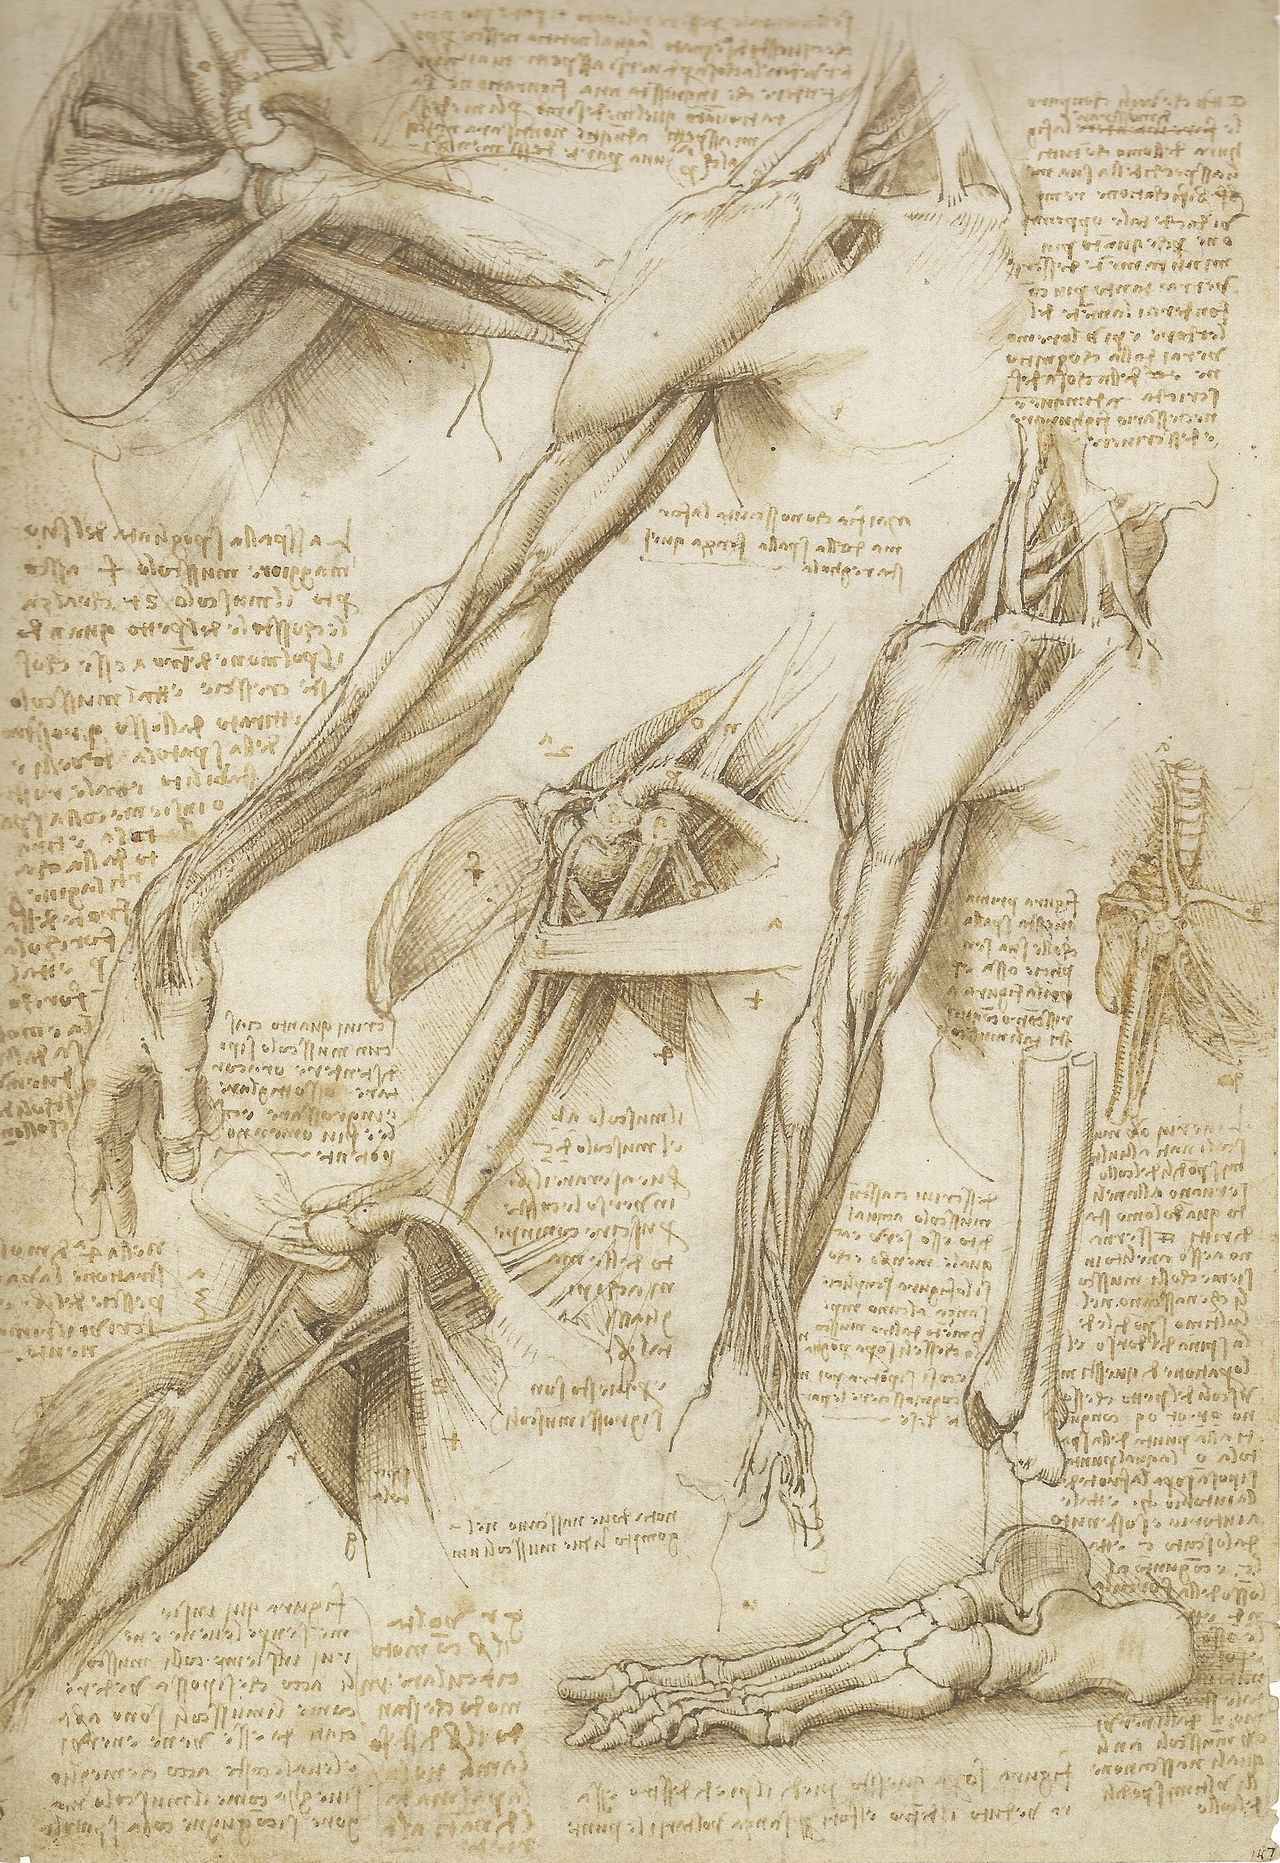 Leonardo da Vinci Mechanics of Man | REF: Anatomy | Pinterest ...